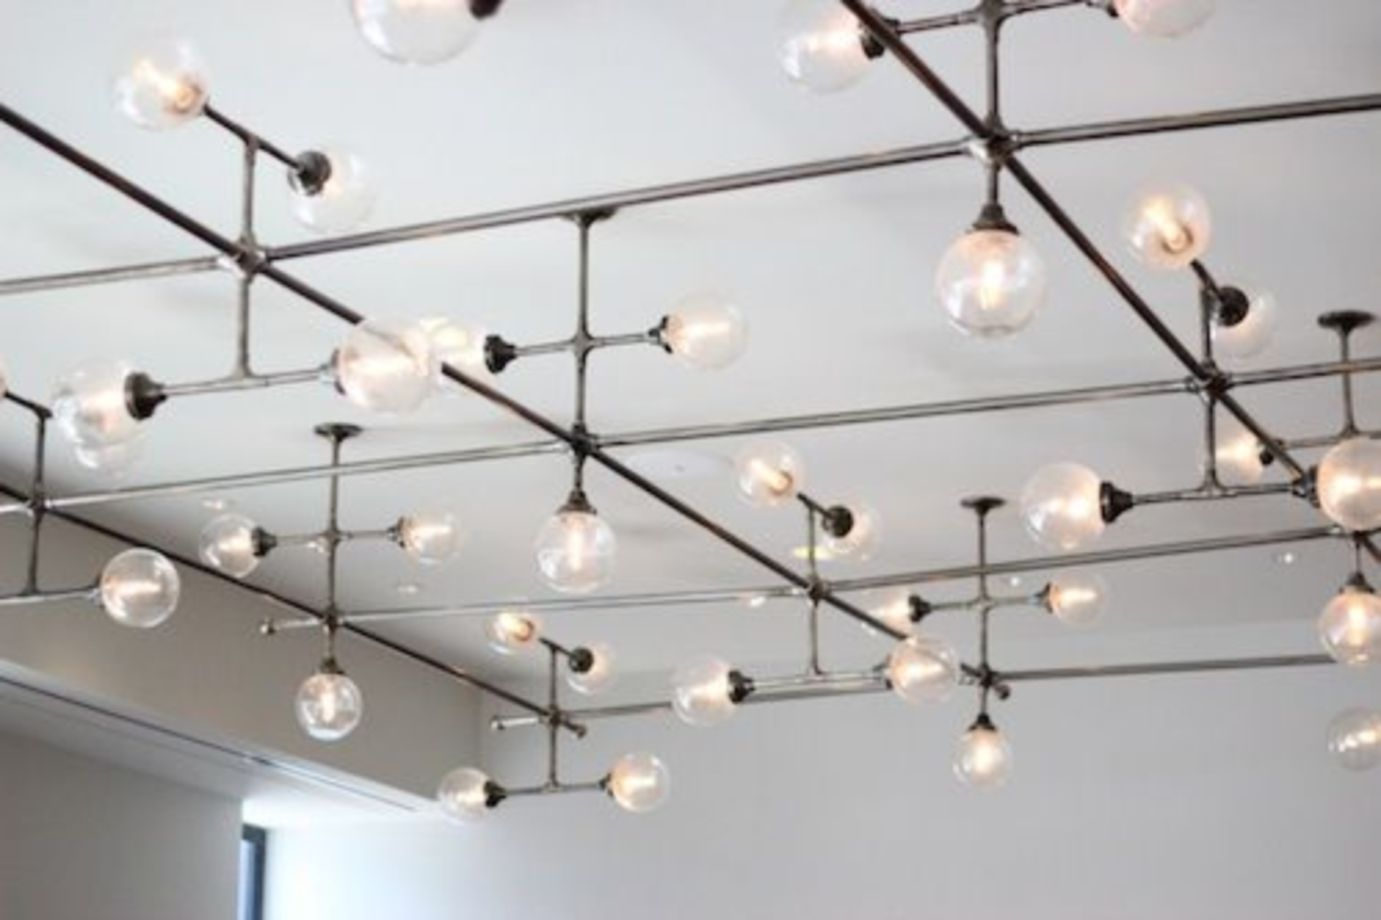 Nice 60 Cool And Creative Track Lighting Ideas Https About Ruth Com 2017 08 14 60 Cool Creative Track Interior Lighting Lighting Inspiration Ceiling Lights